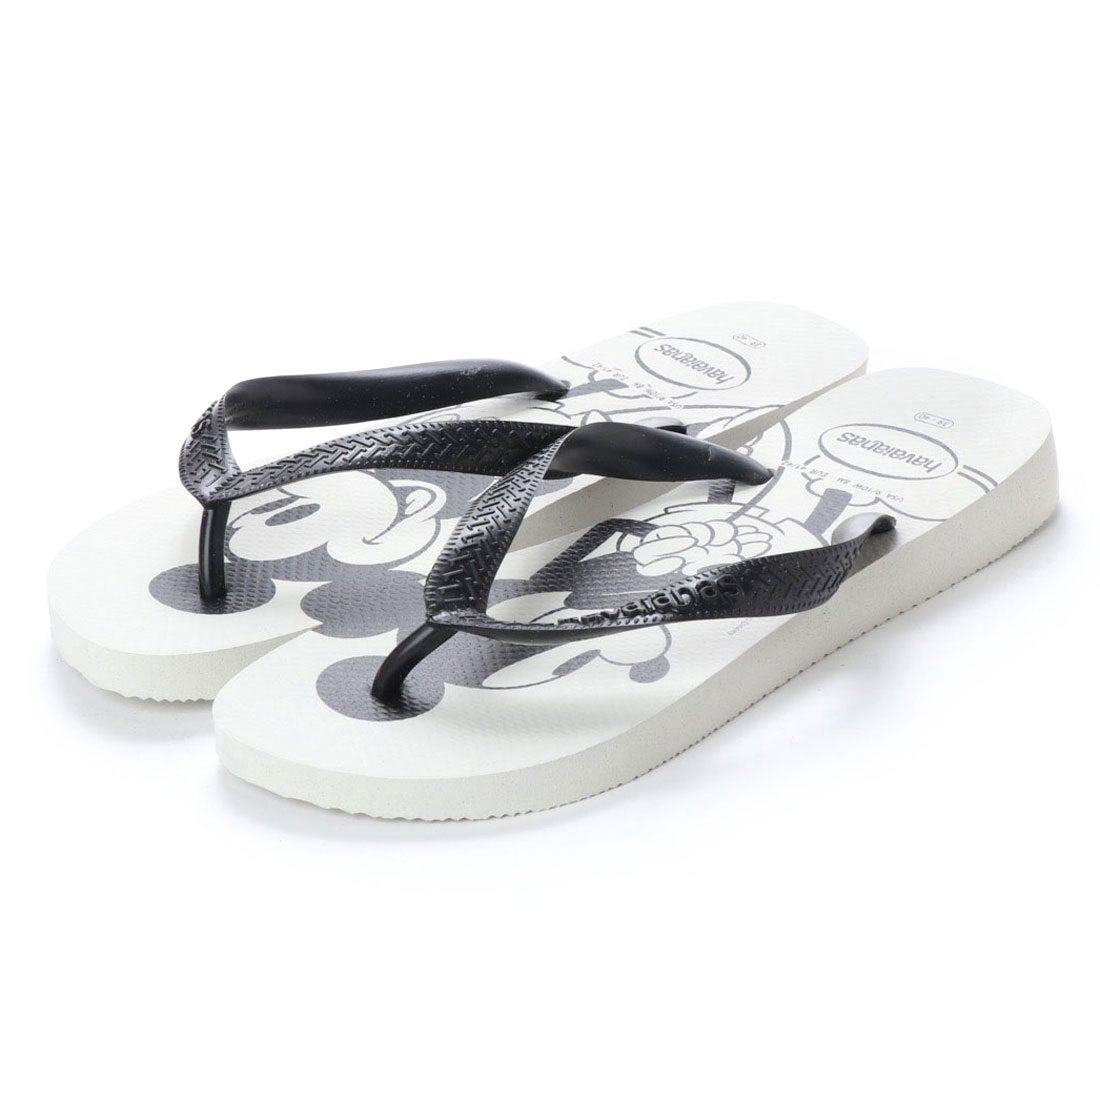 ハワイアナス havaianas TOP DISNEY (kids sizes) (white/black)